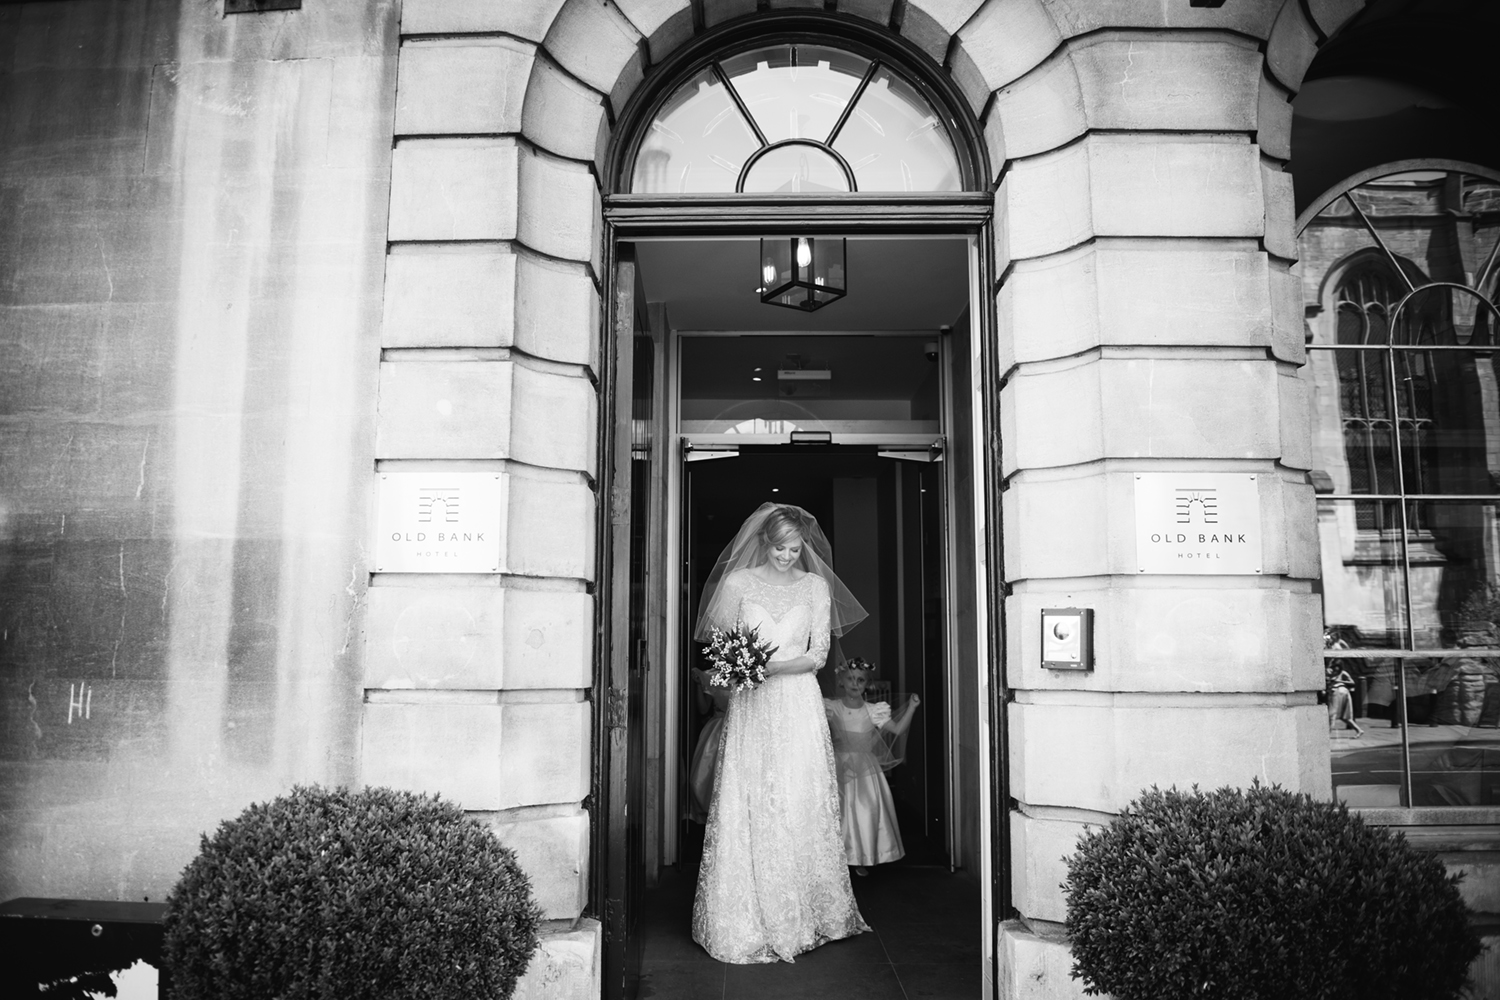 Oxford-University-Wedding-Photographer-0030.jpg